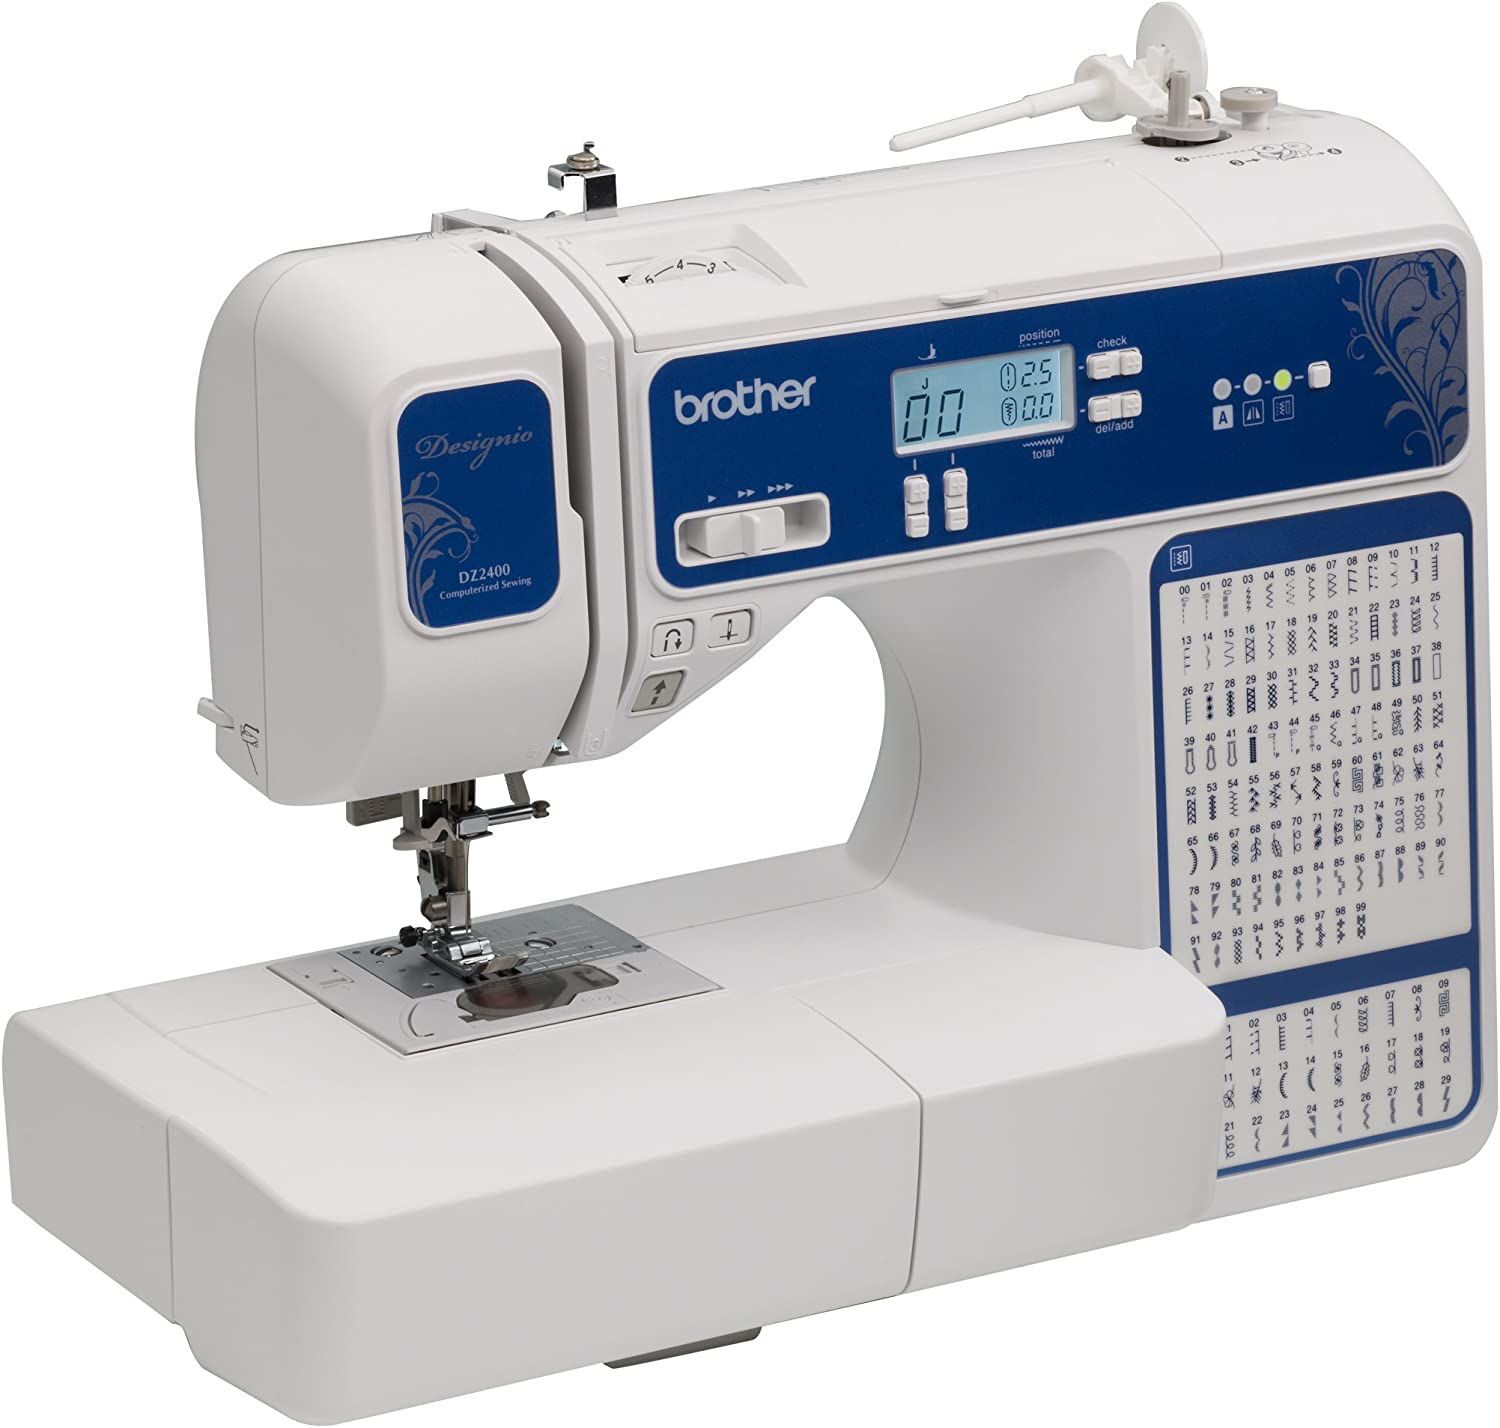 Brother Designio Series DZ2400 Computerized Sewing & Quilting ...